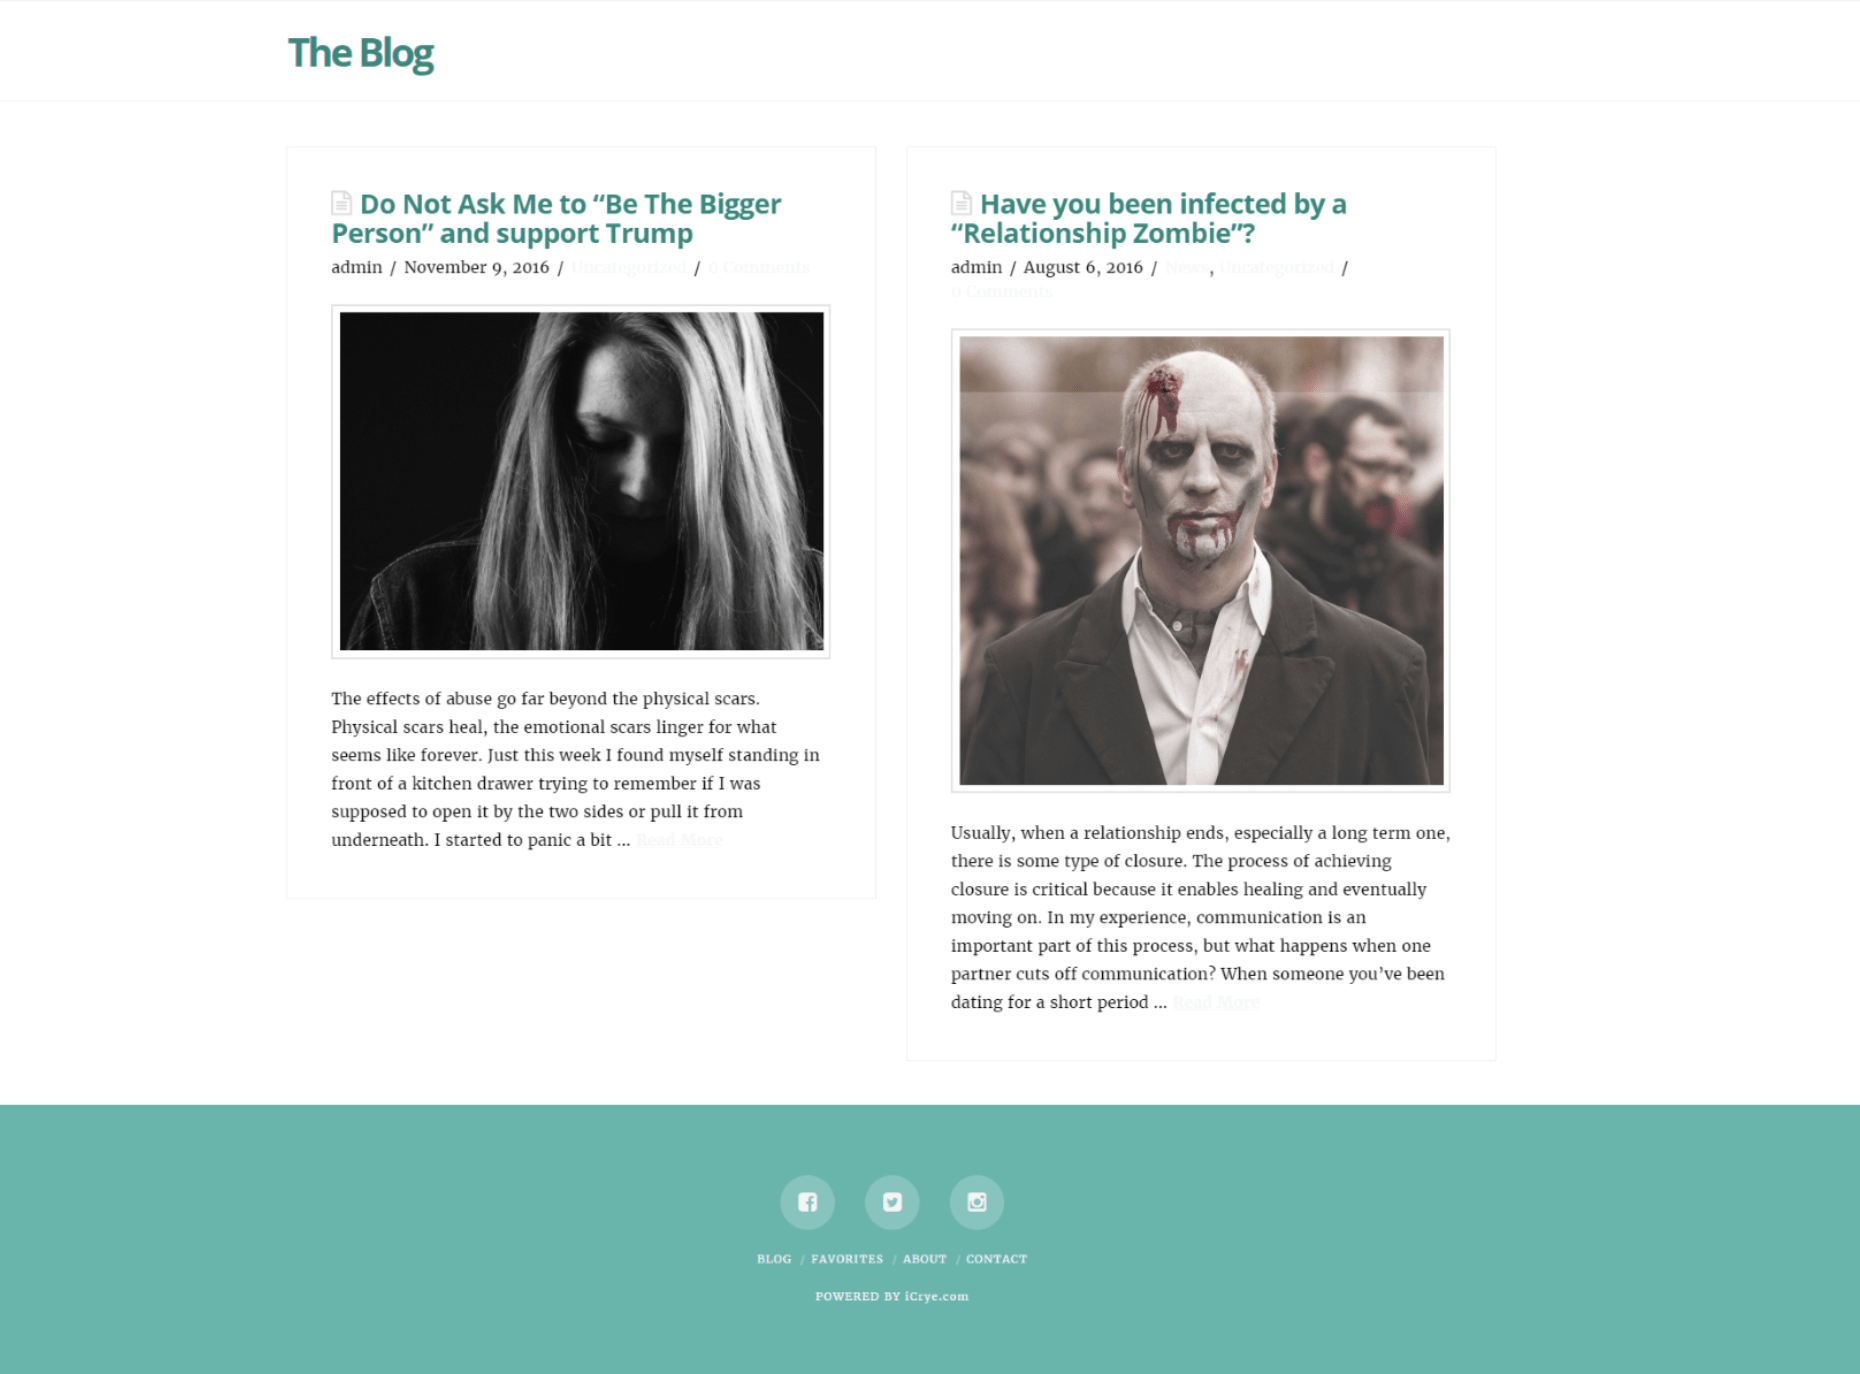 Blog Website Design